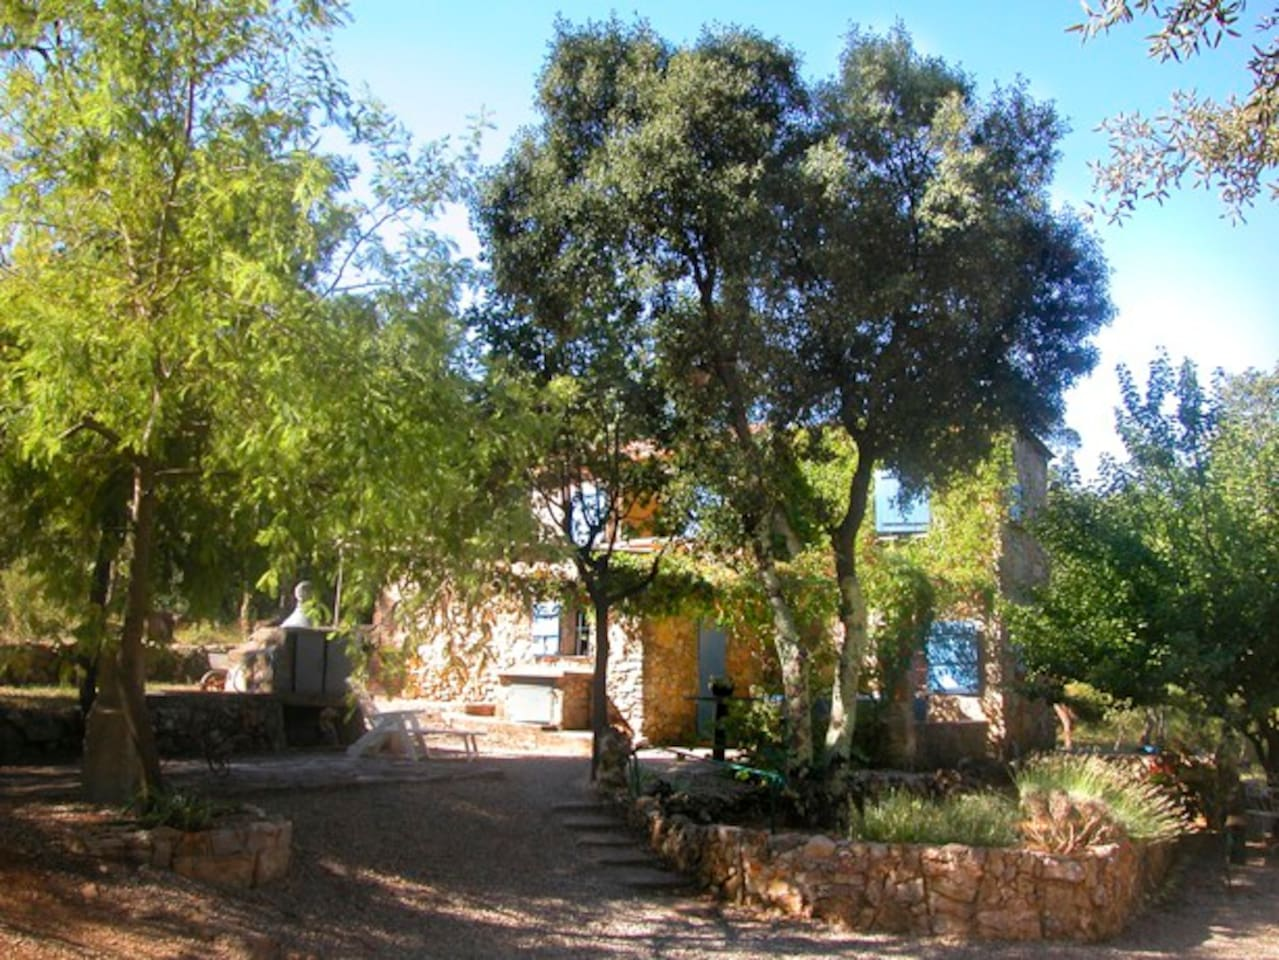 Cabanon (cottage) in green hills of Provence